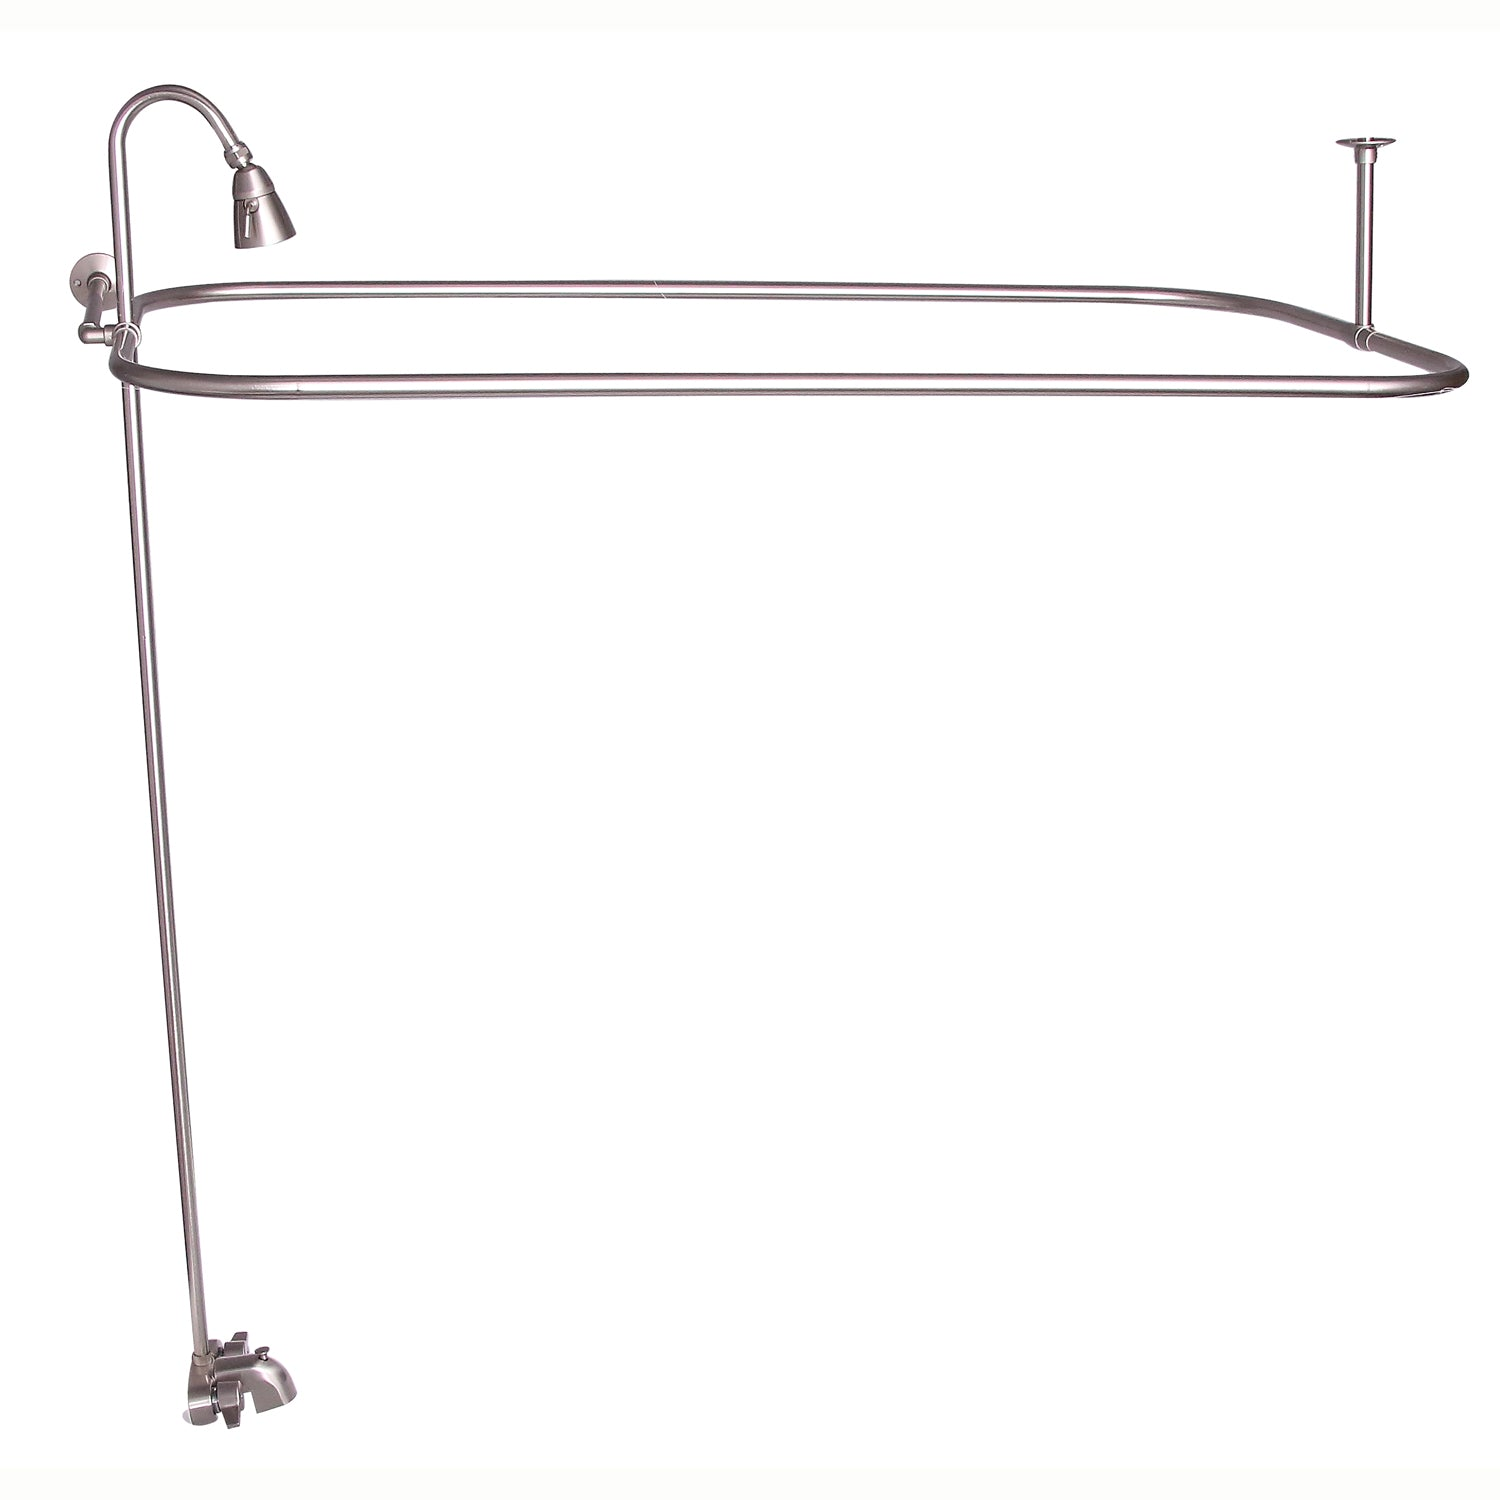 Barclay Products Converto Rectangular Shower Unit With Side Wall Suppo Luxury Freestanding Tubs